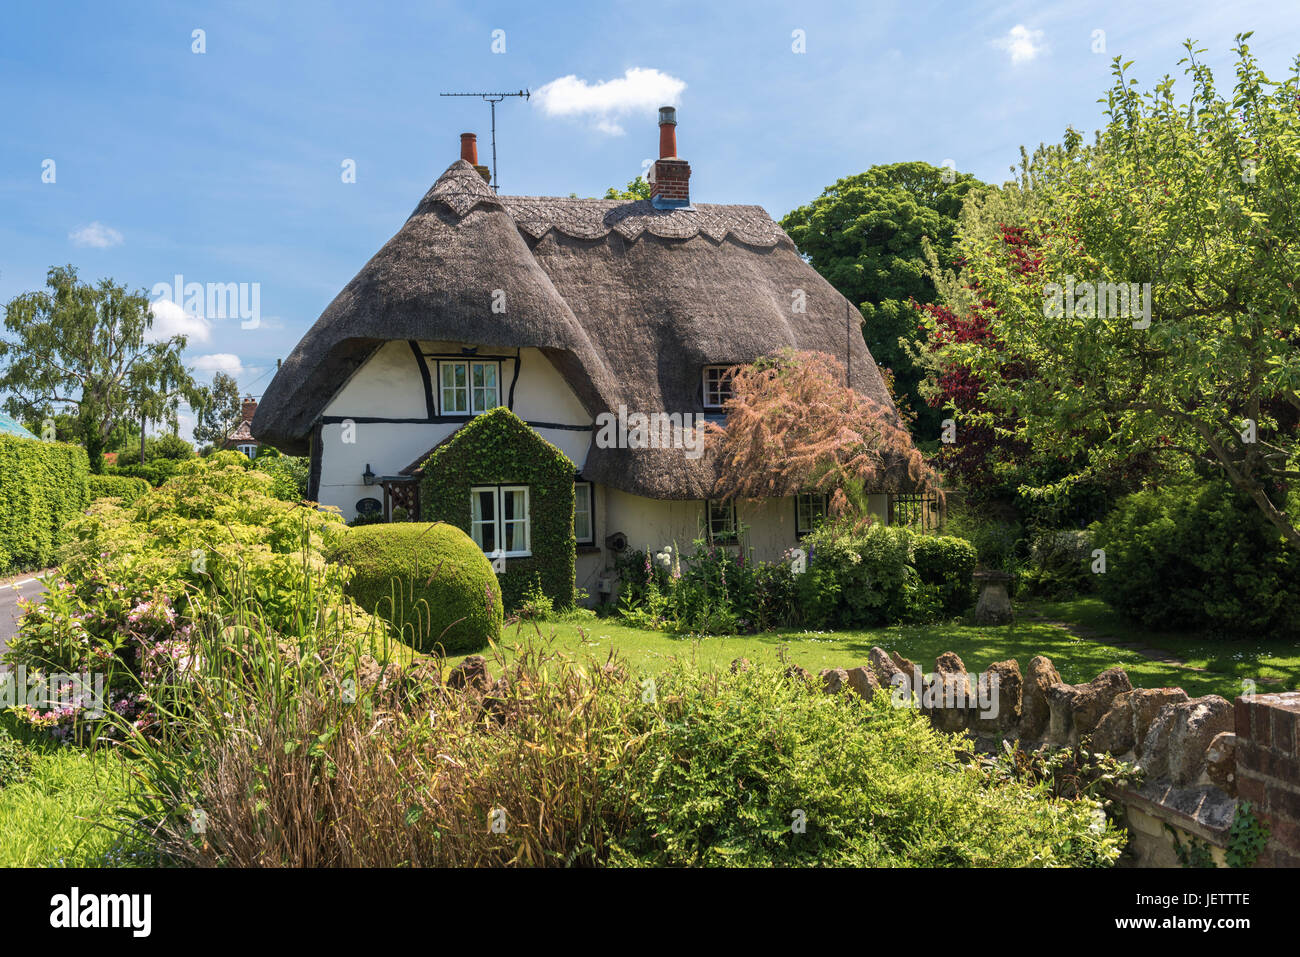 West Hagbourne, Oxfordshire, UK - Stock Image